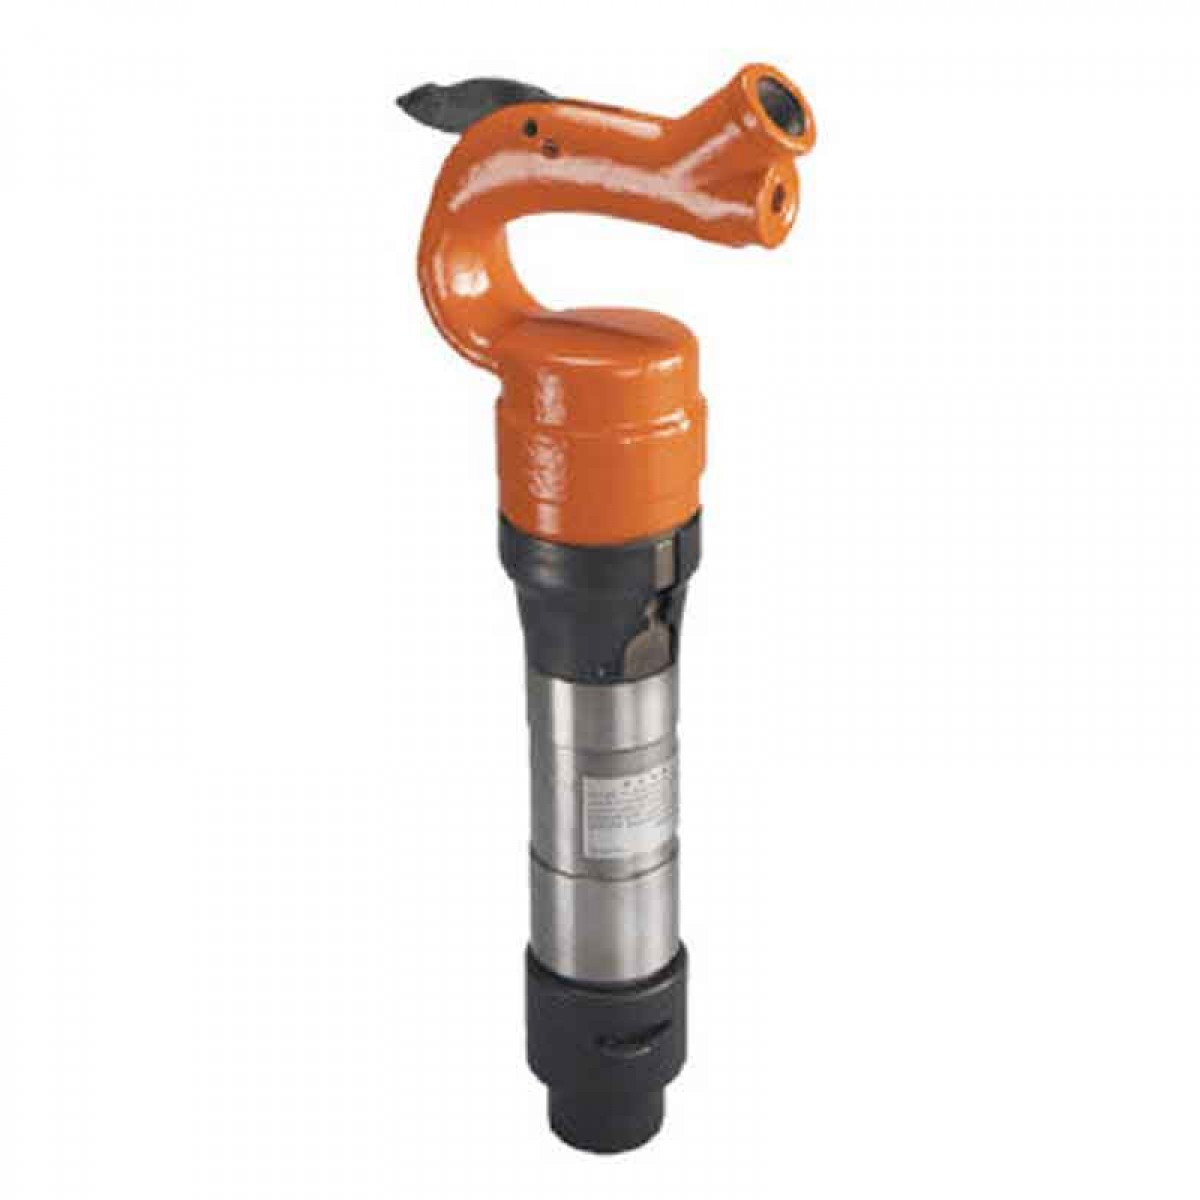 M650 Apt Chipping Hammer 680 Round Nose Bushing 2 Quot Stroke